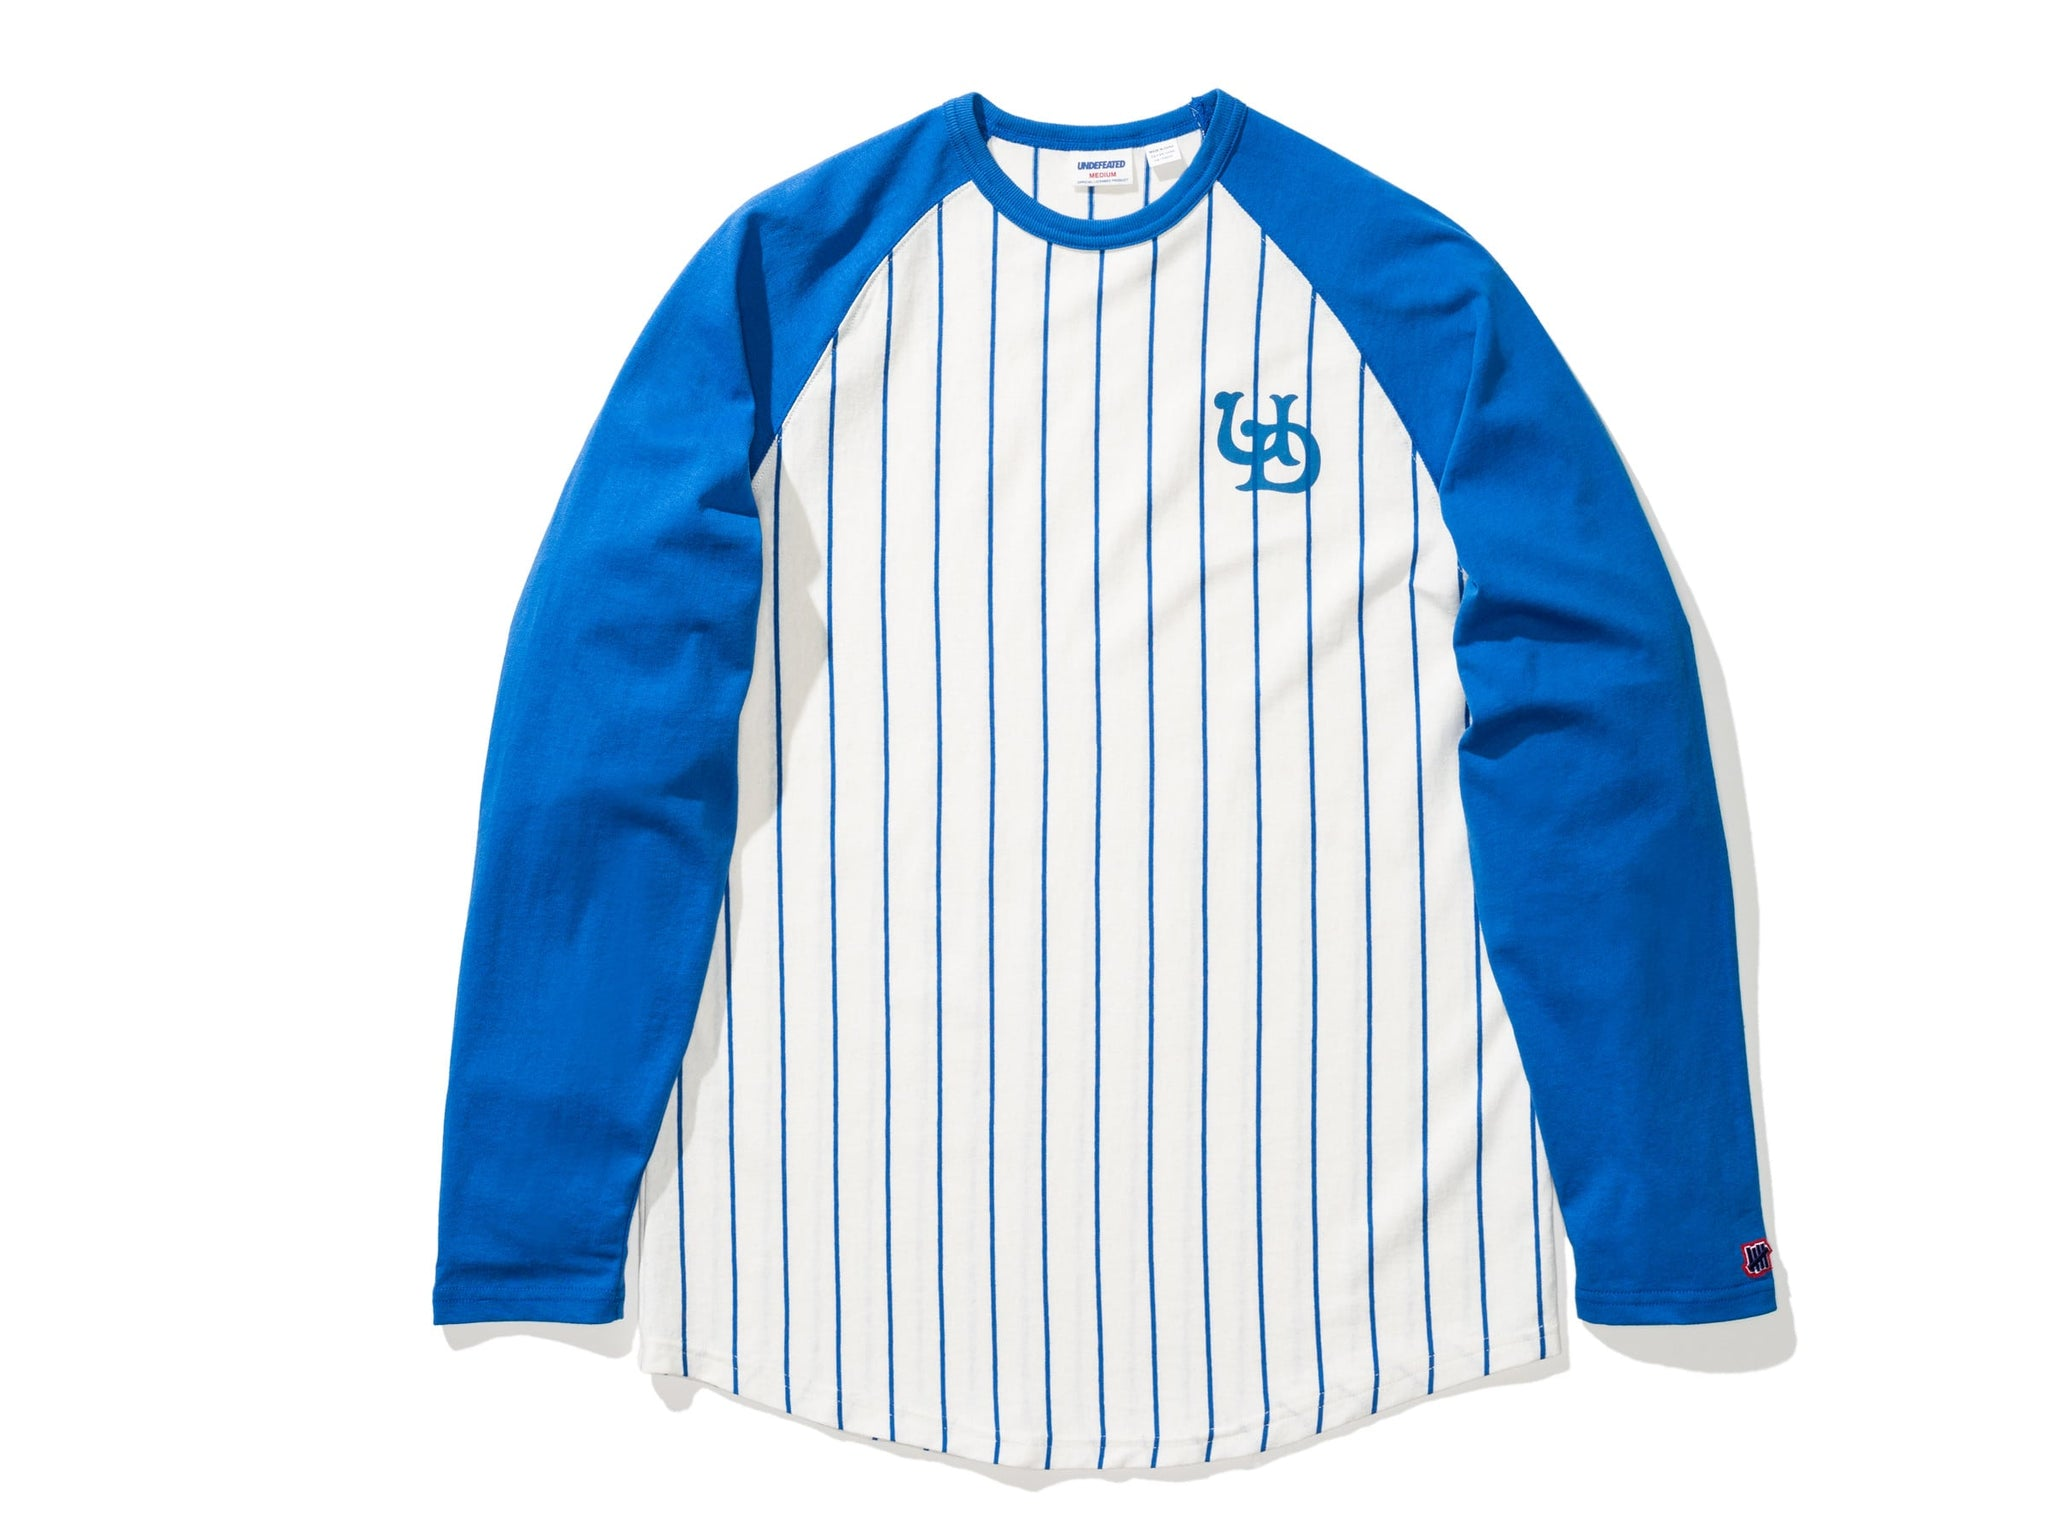 UNDEFEATED STRIPED L/S BASEBALL TEE